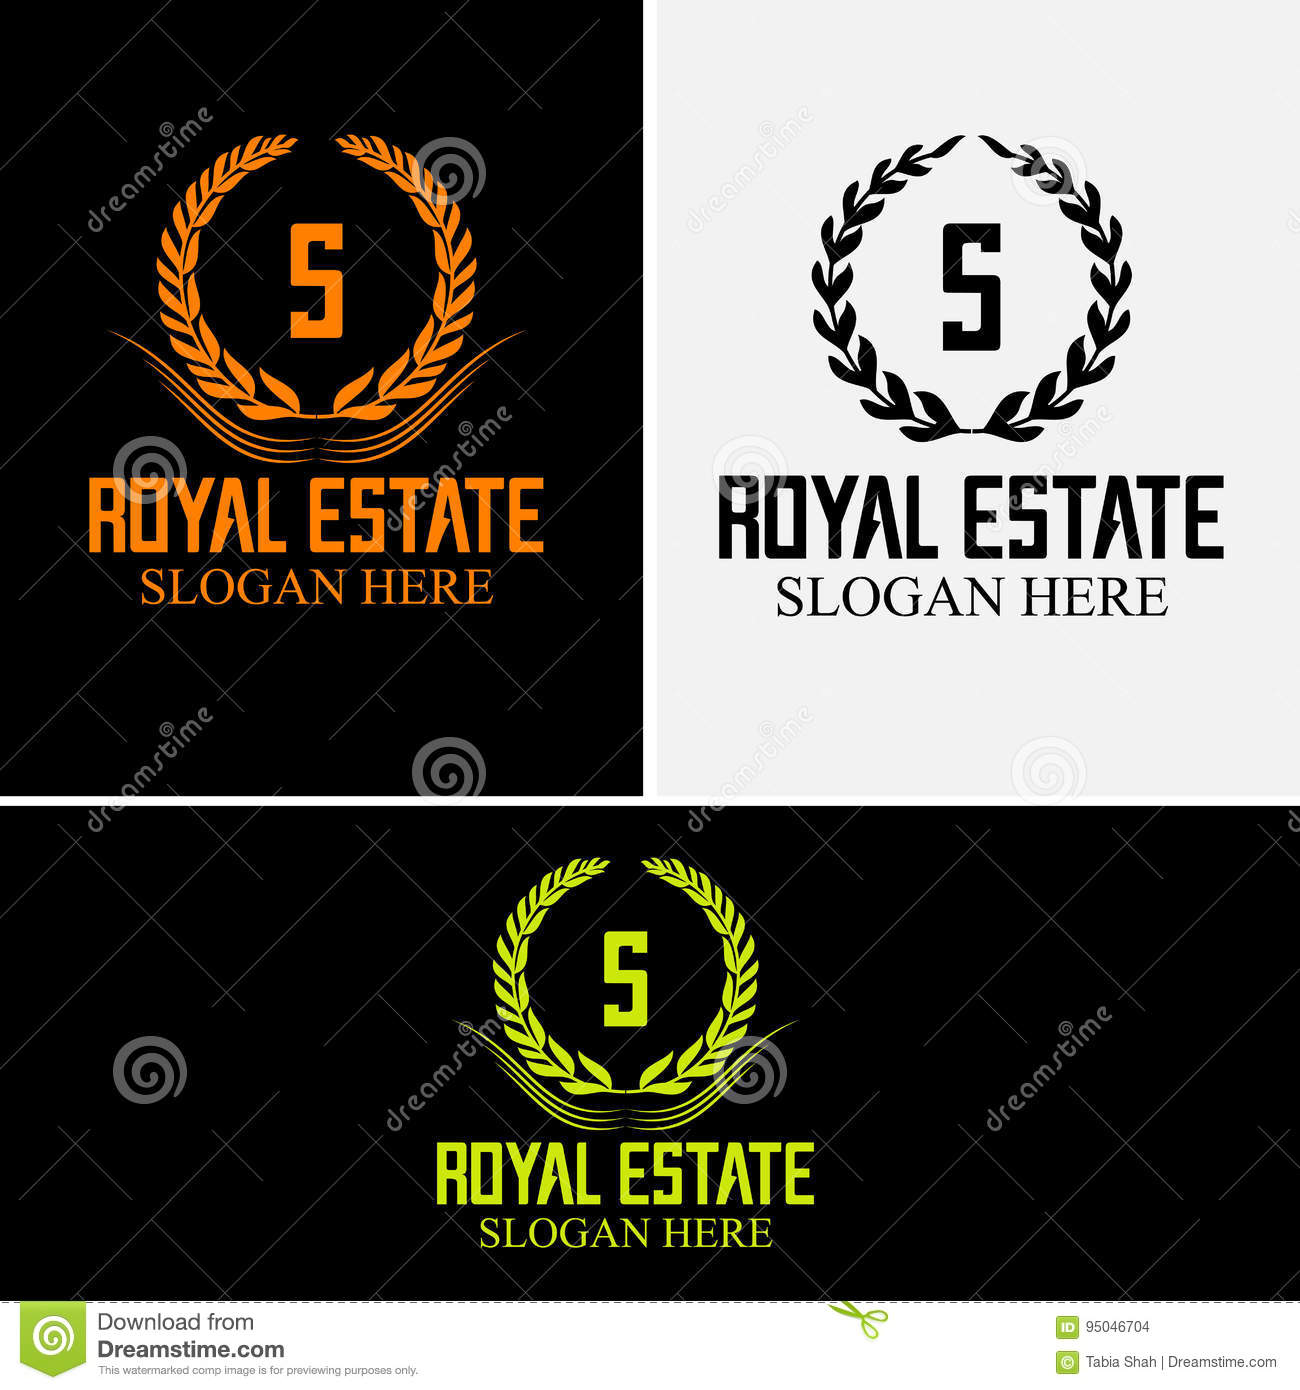 S Company Logo Luxurious Hotel Coat Of Arms Gold Colored Round Royalty Classic Symbol Template Stock Vector Illustration Of Emblem Fully 95046704